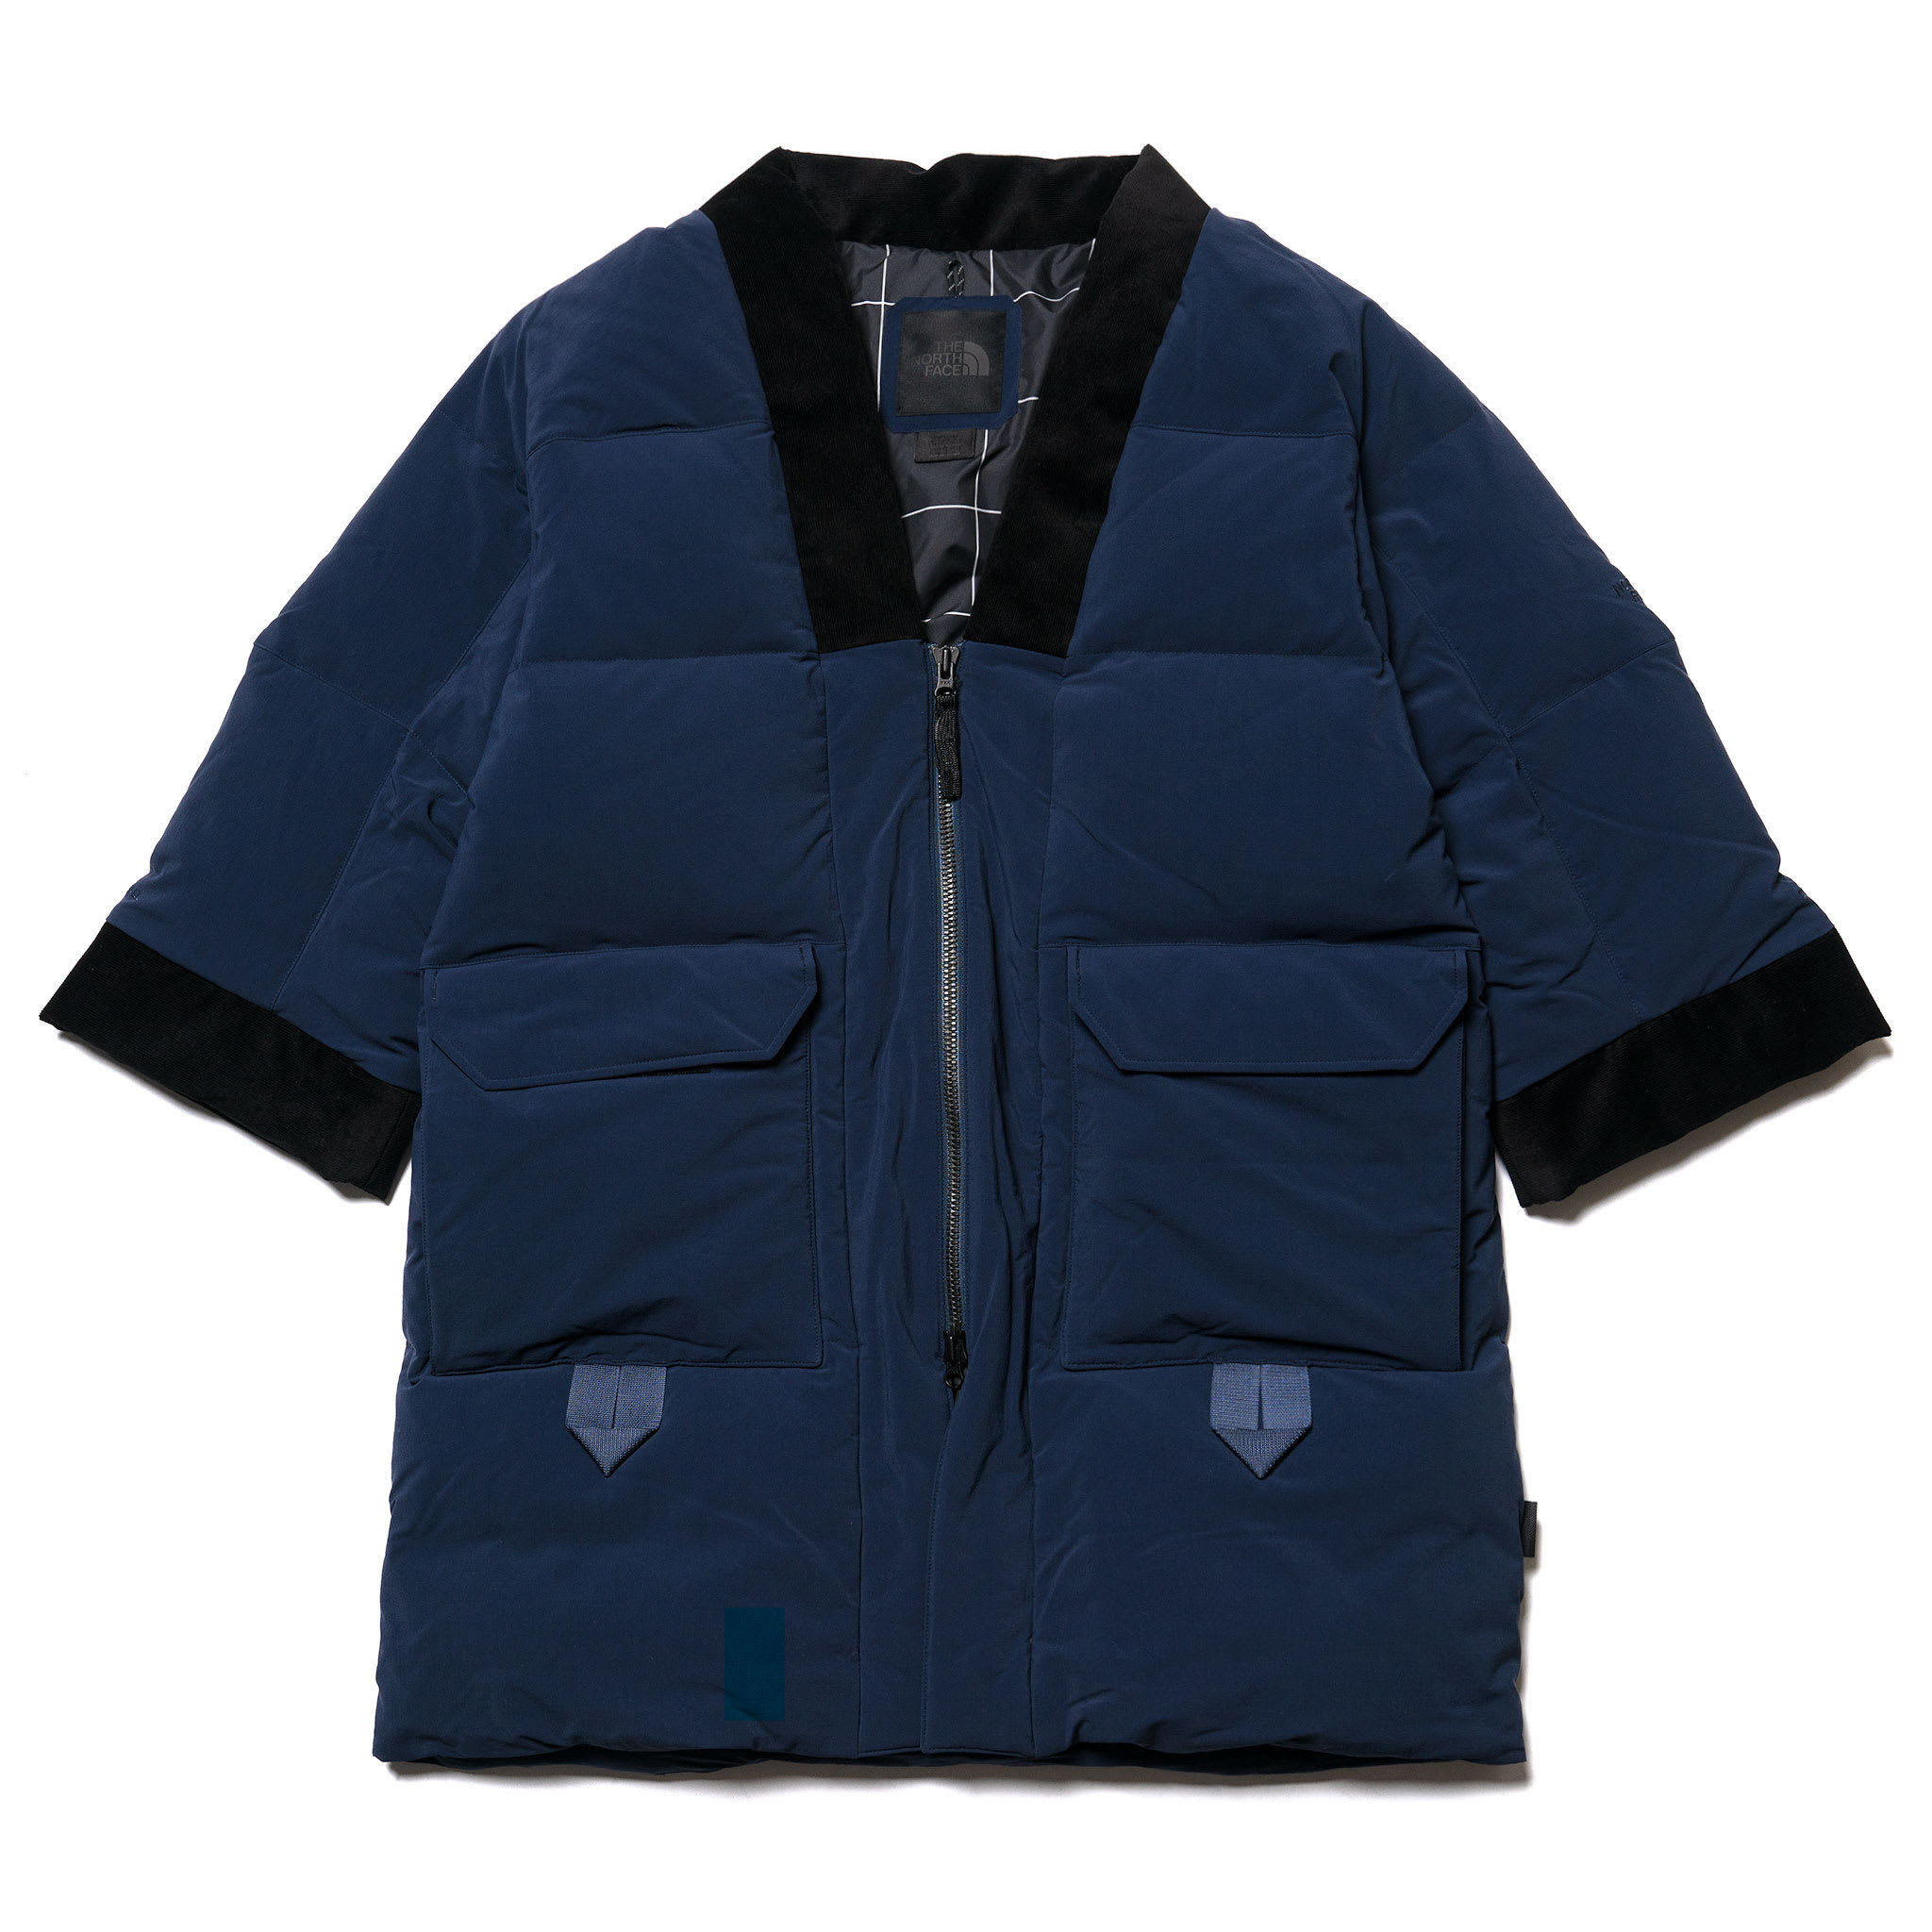 fecea4c0a933 The North Face expands on its recently introduced Black Series this season.  After a strong introduction in the form of a collaborative collection with  ...